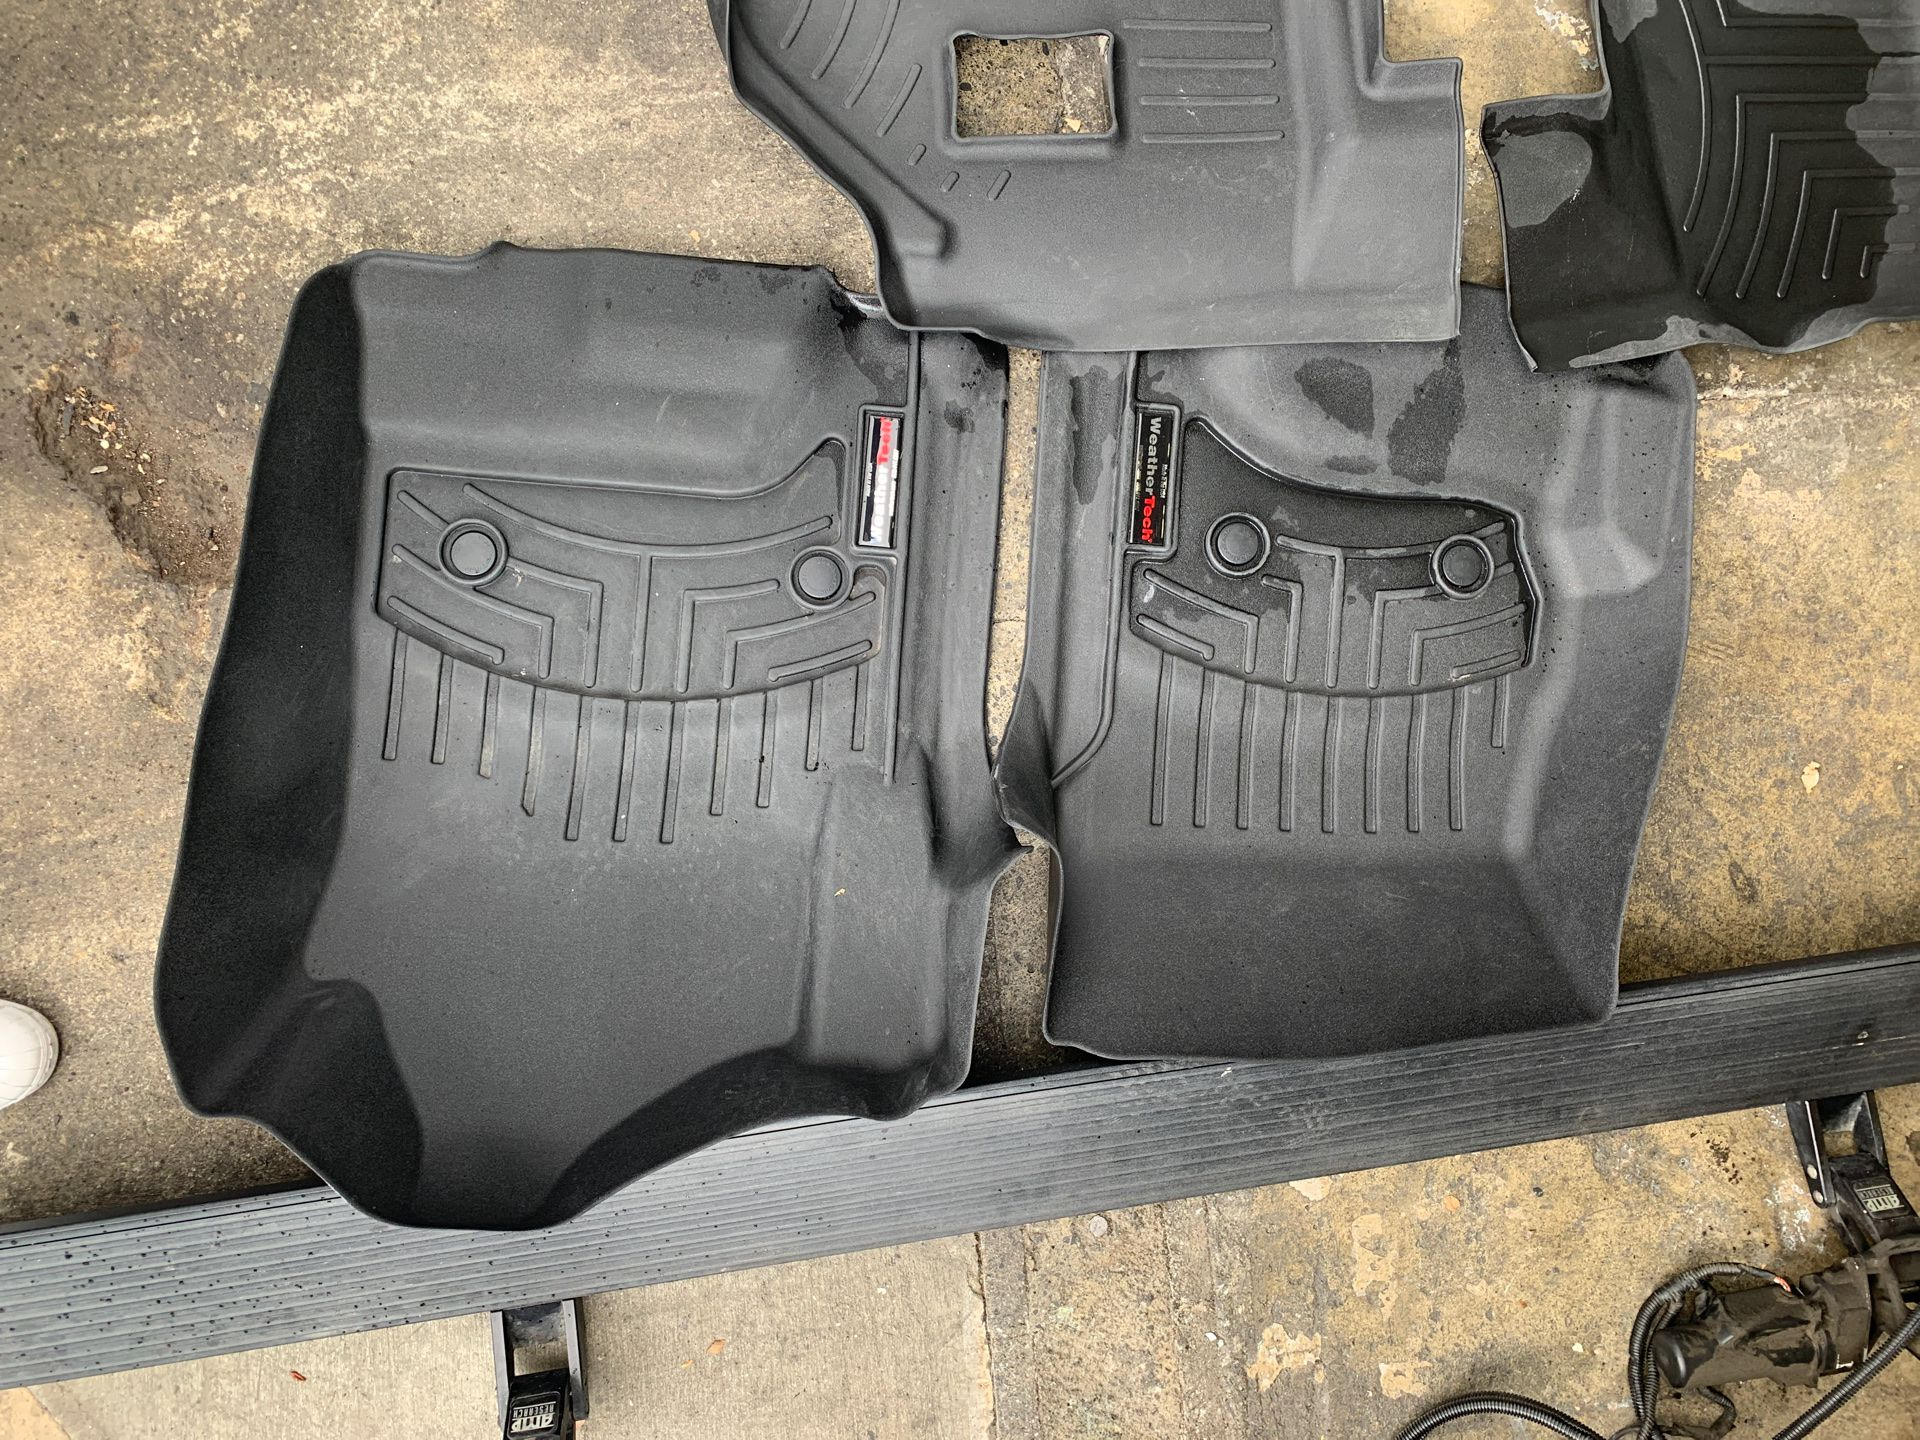 Electric Running Boards and WeatherTech mats